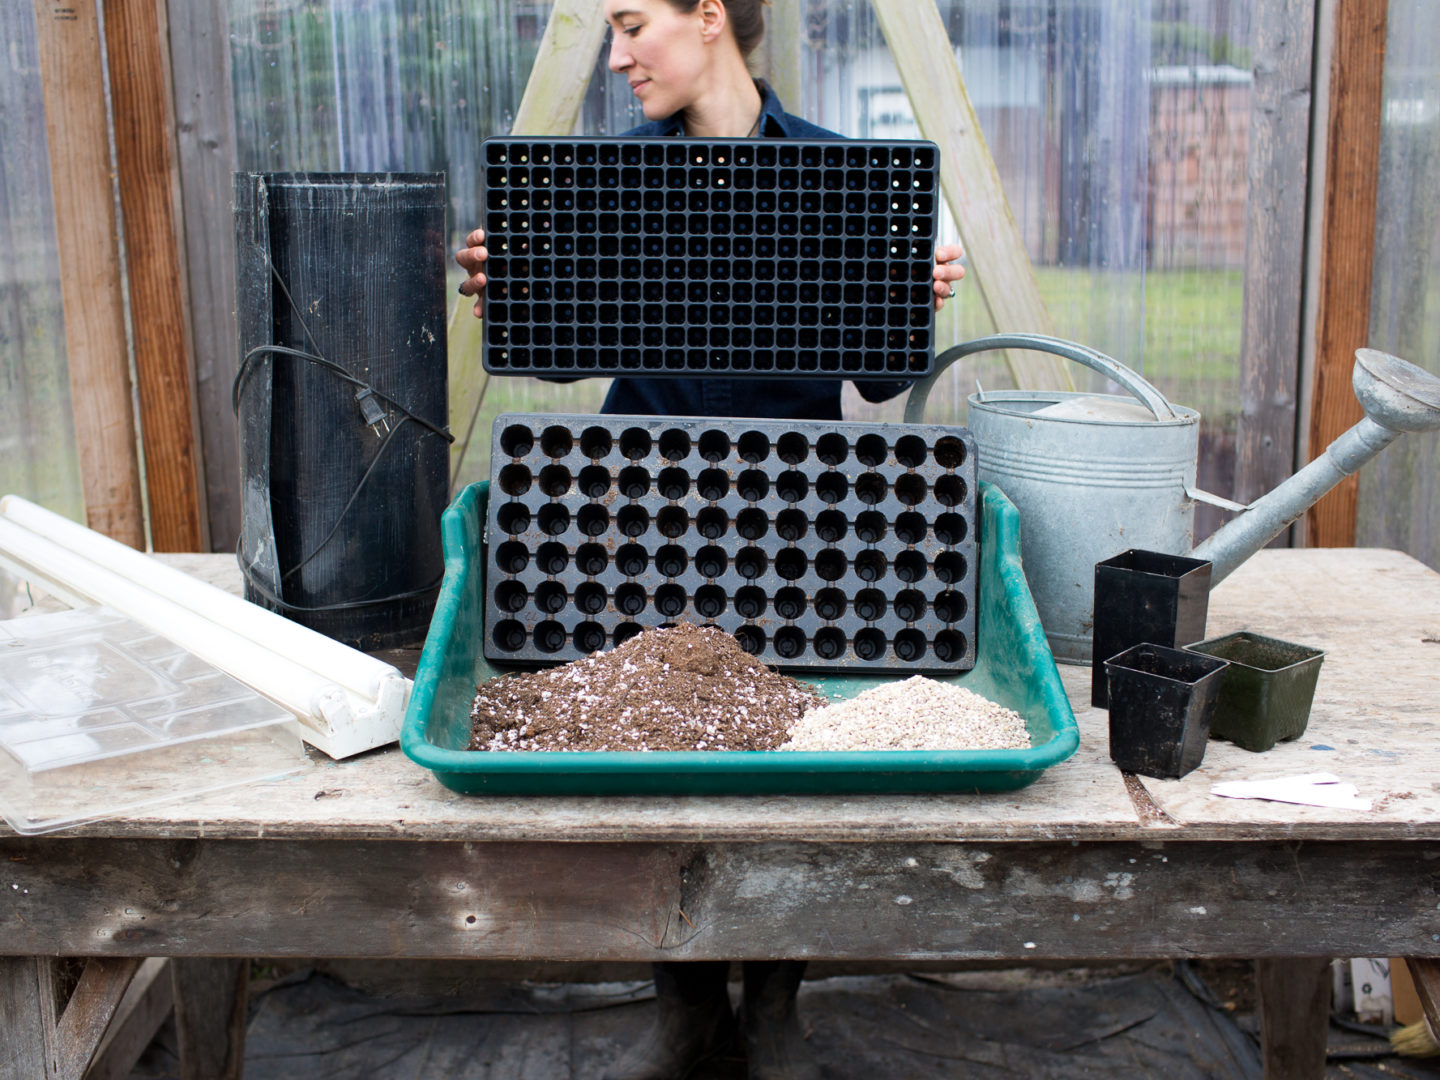 Erin Benzakein showing seed starting materials